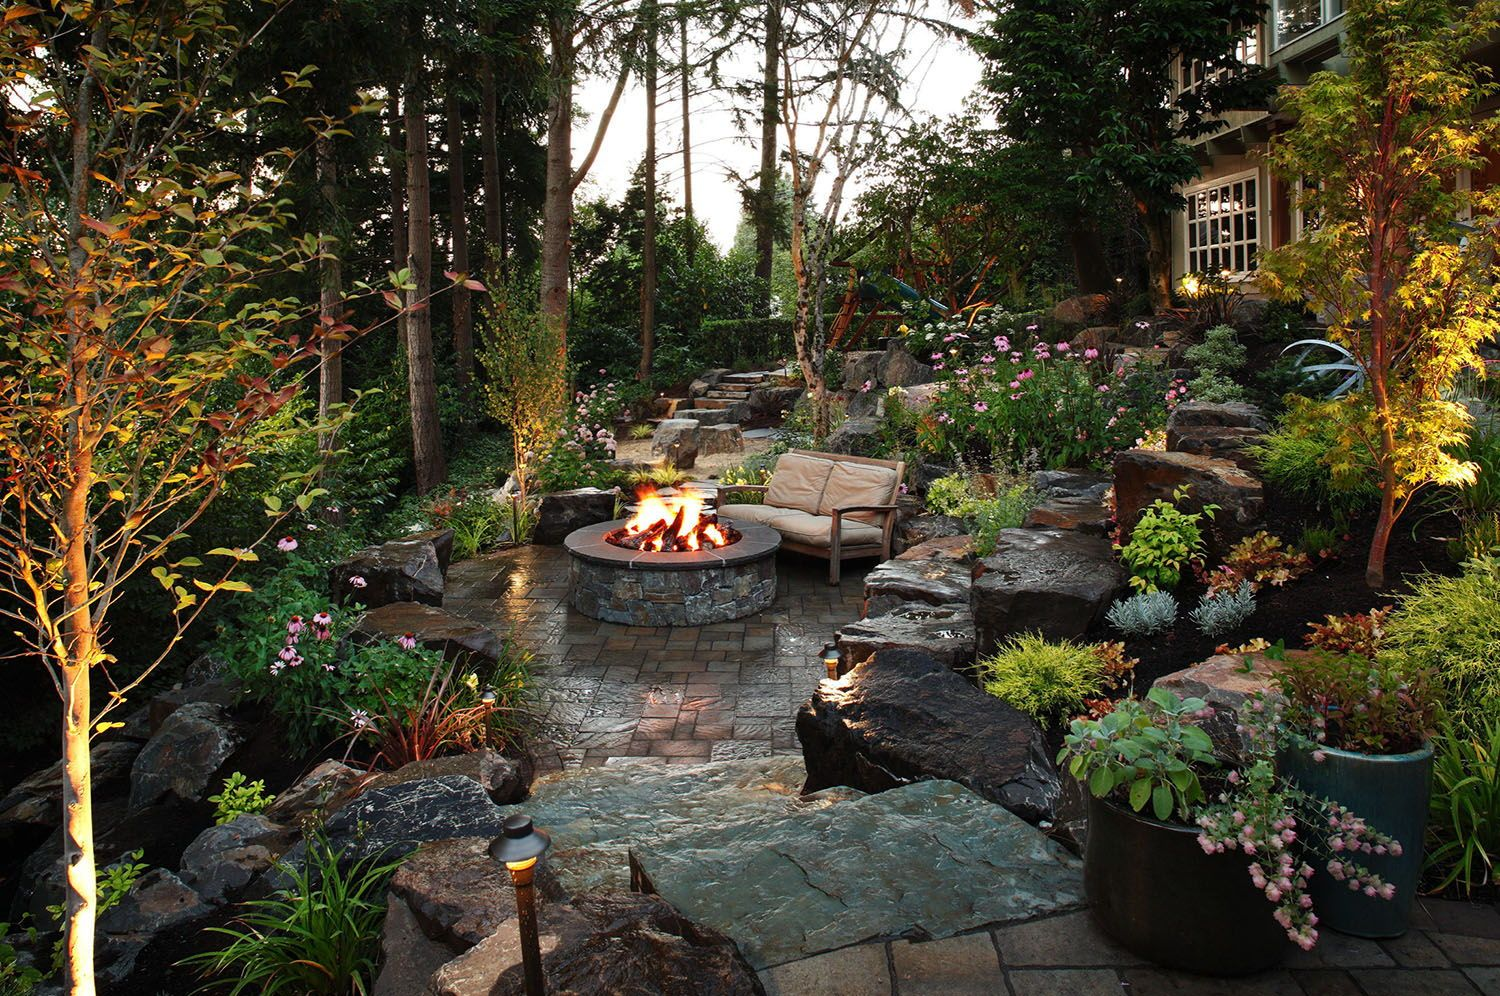 21 Absolutely Fantastic Backyard Gardens Ideas With Cozy Fire Pits Fire Pit Landscaping Sloped Garden Outdoor Fire Pit